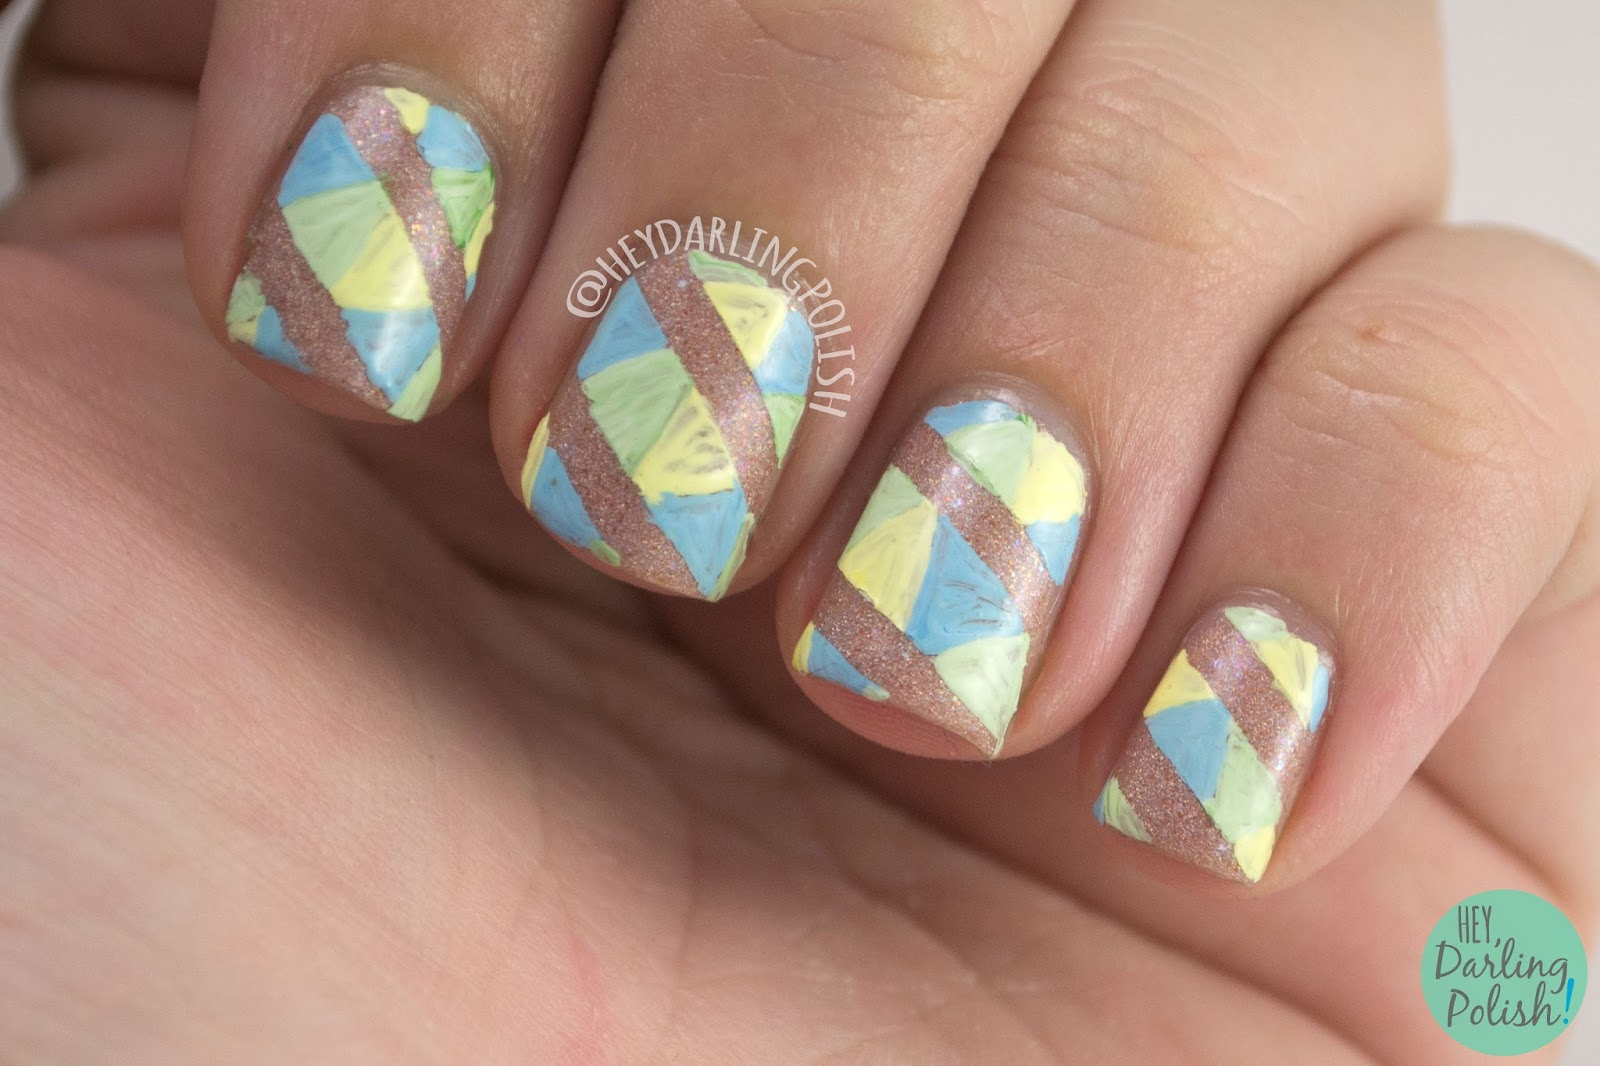 nails, nail art, nail polish, geometric, stripes, triangles, 31 day challenge, 31dc2014, pattern